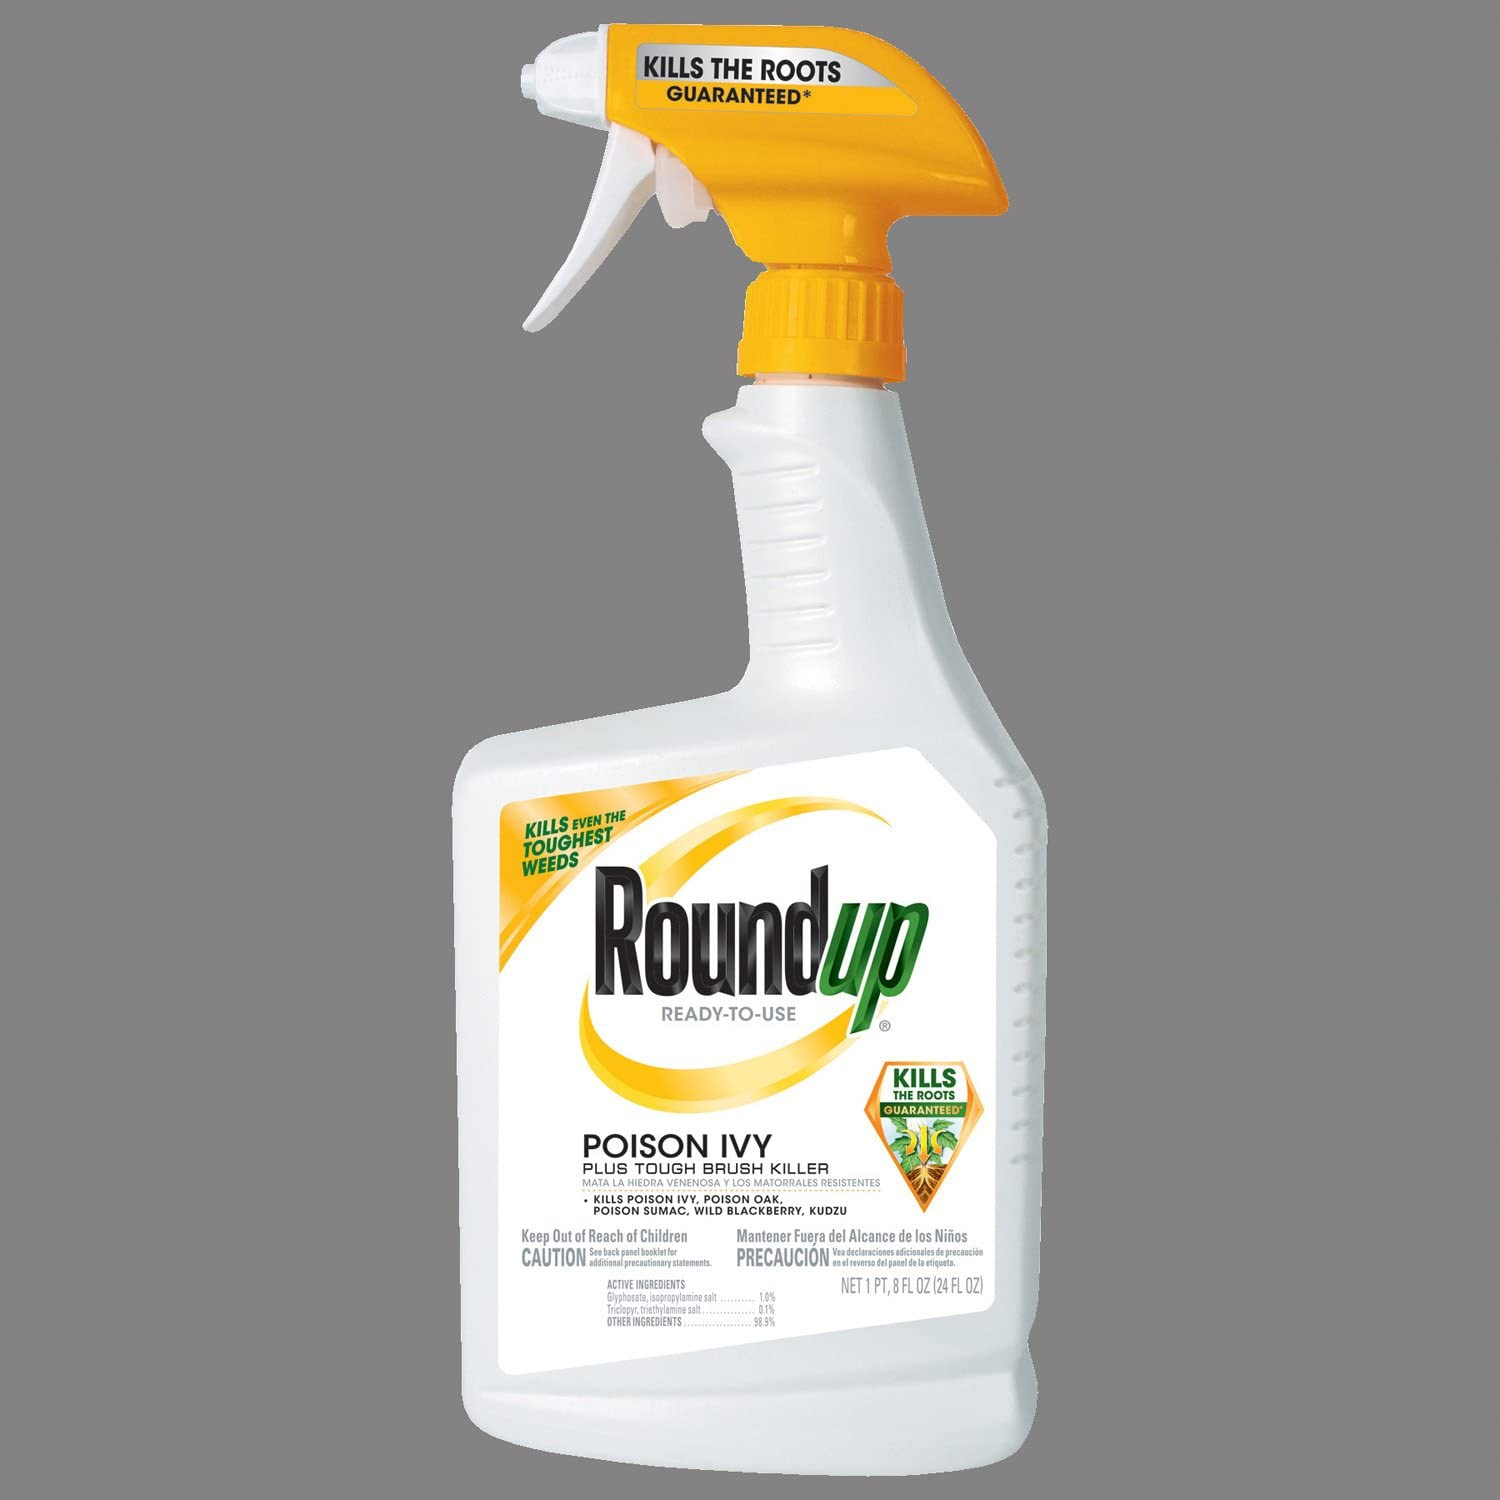 Roundup 5002710 Poison Ivy Plus Tough Brush Killer Ready-to-Use Trigger Spray, 24-Ounce (Older Model)